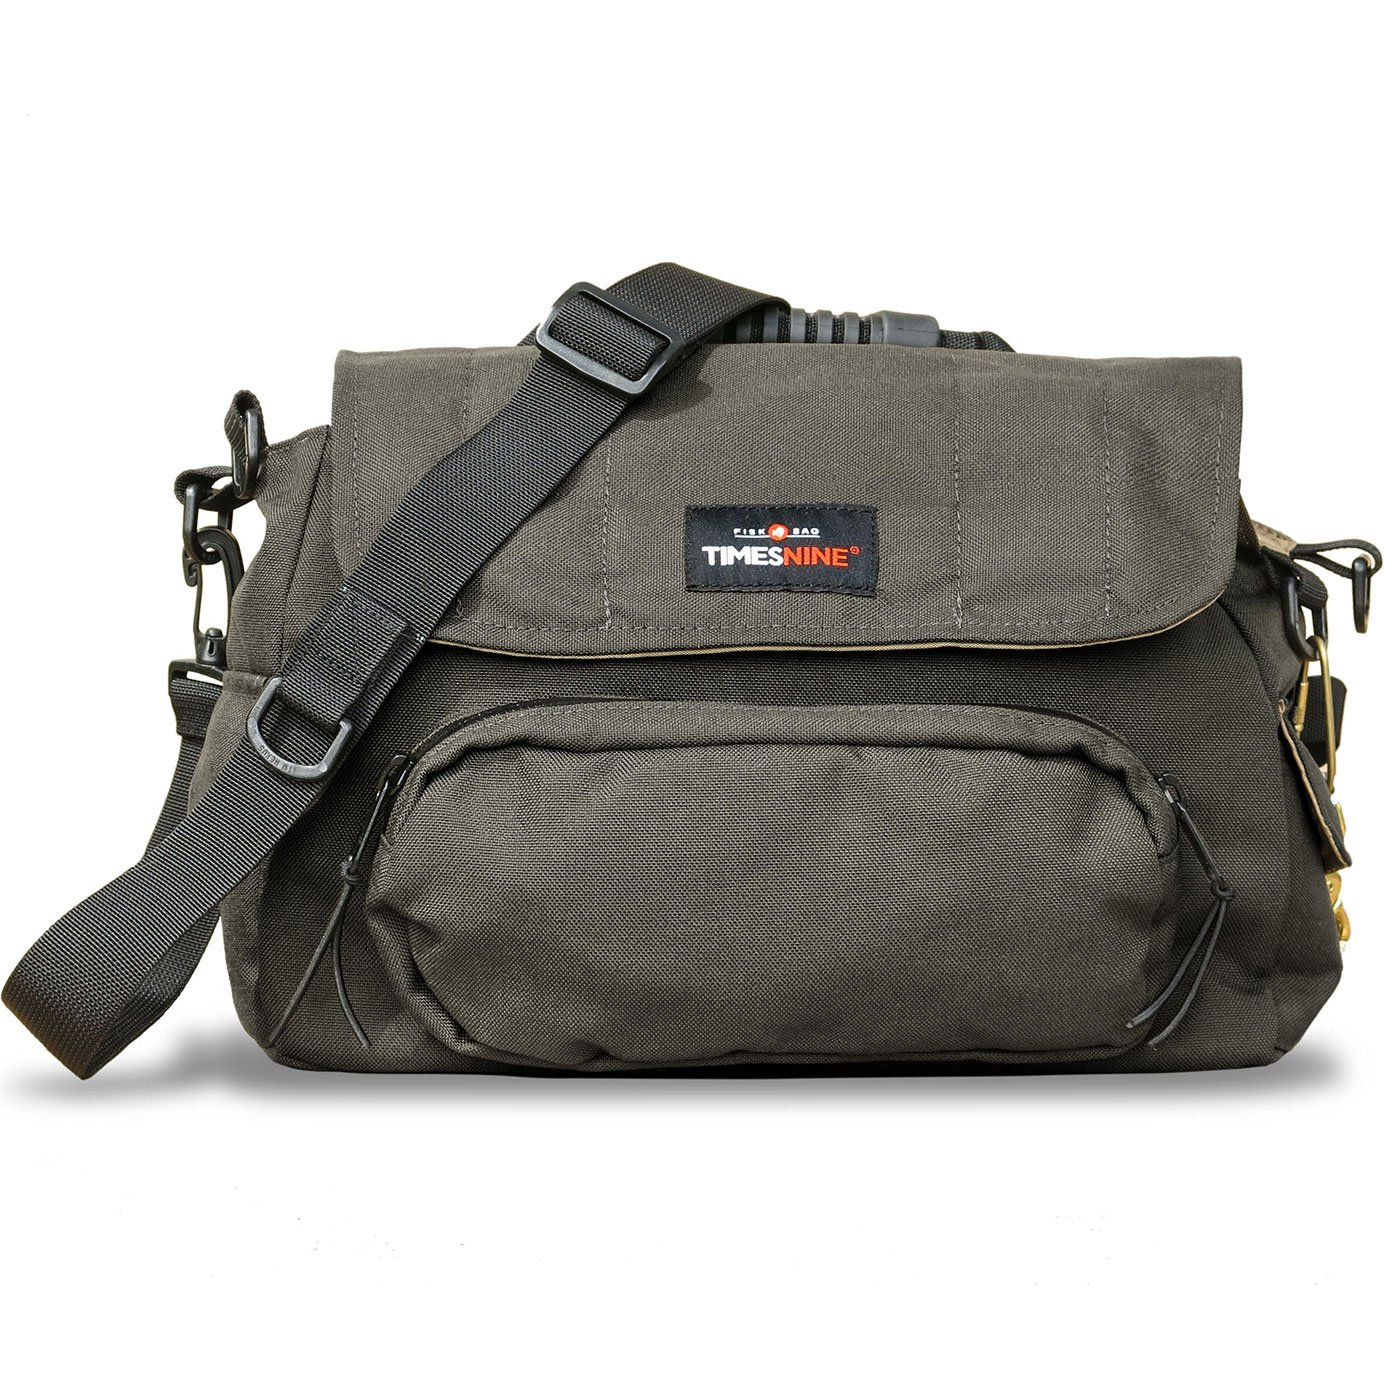 FISK BAG, Fly Fishing Bag with Rod Holder by TimesNine